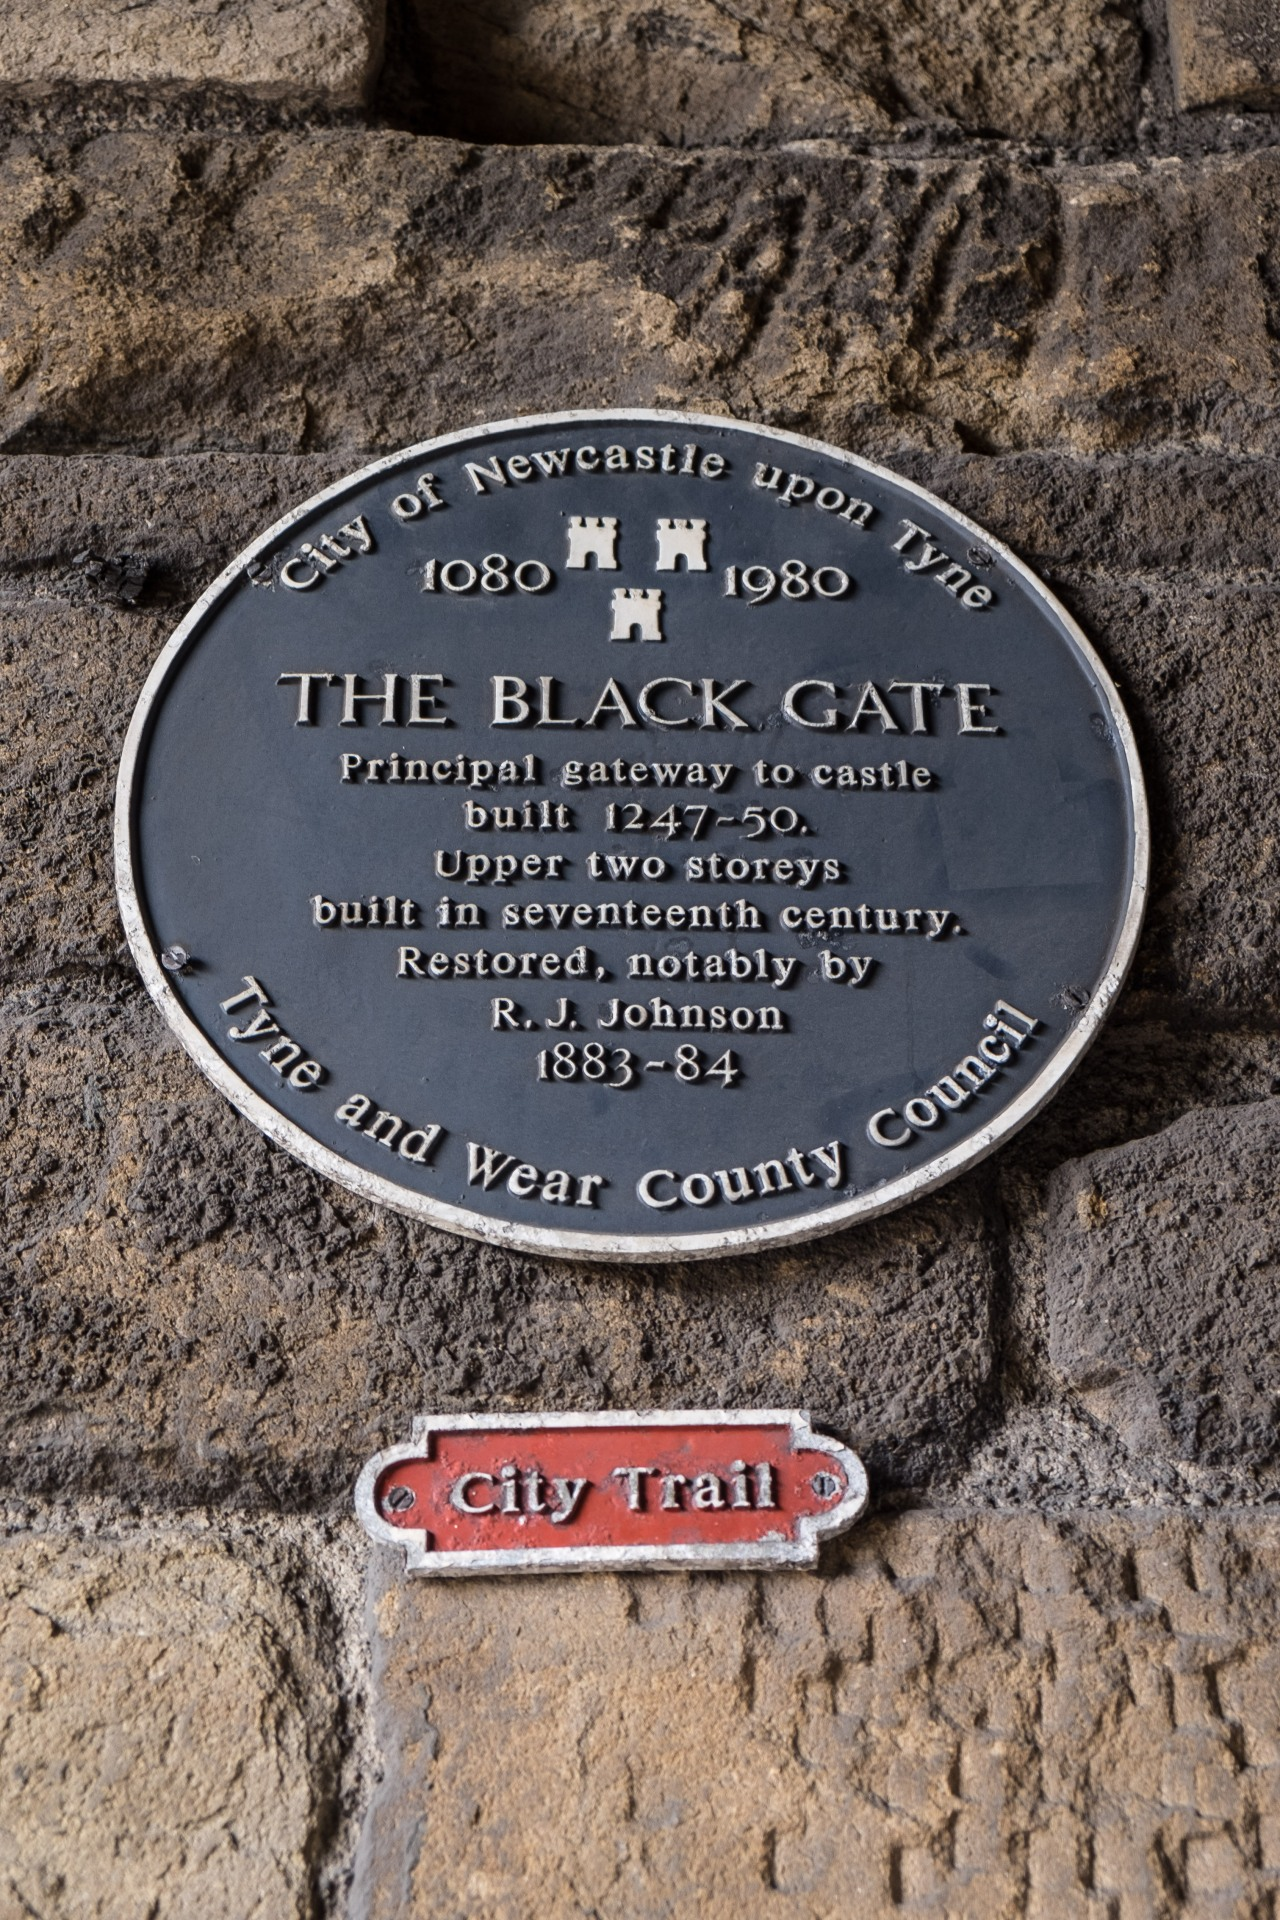 The Black Gate plaque